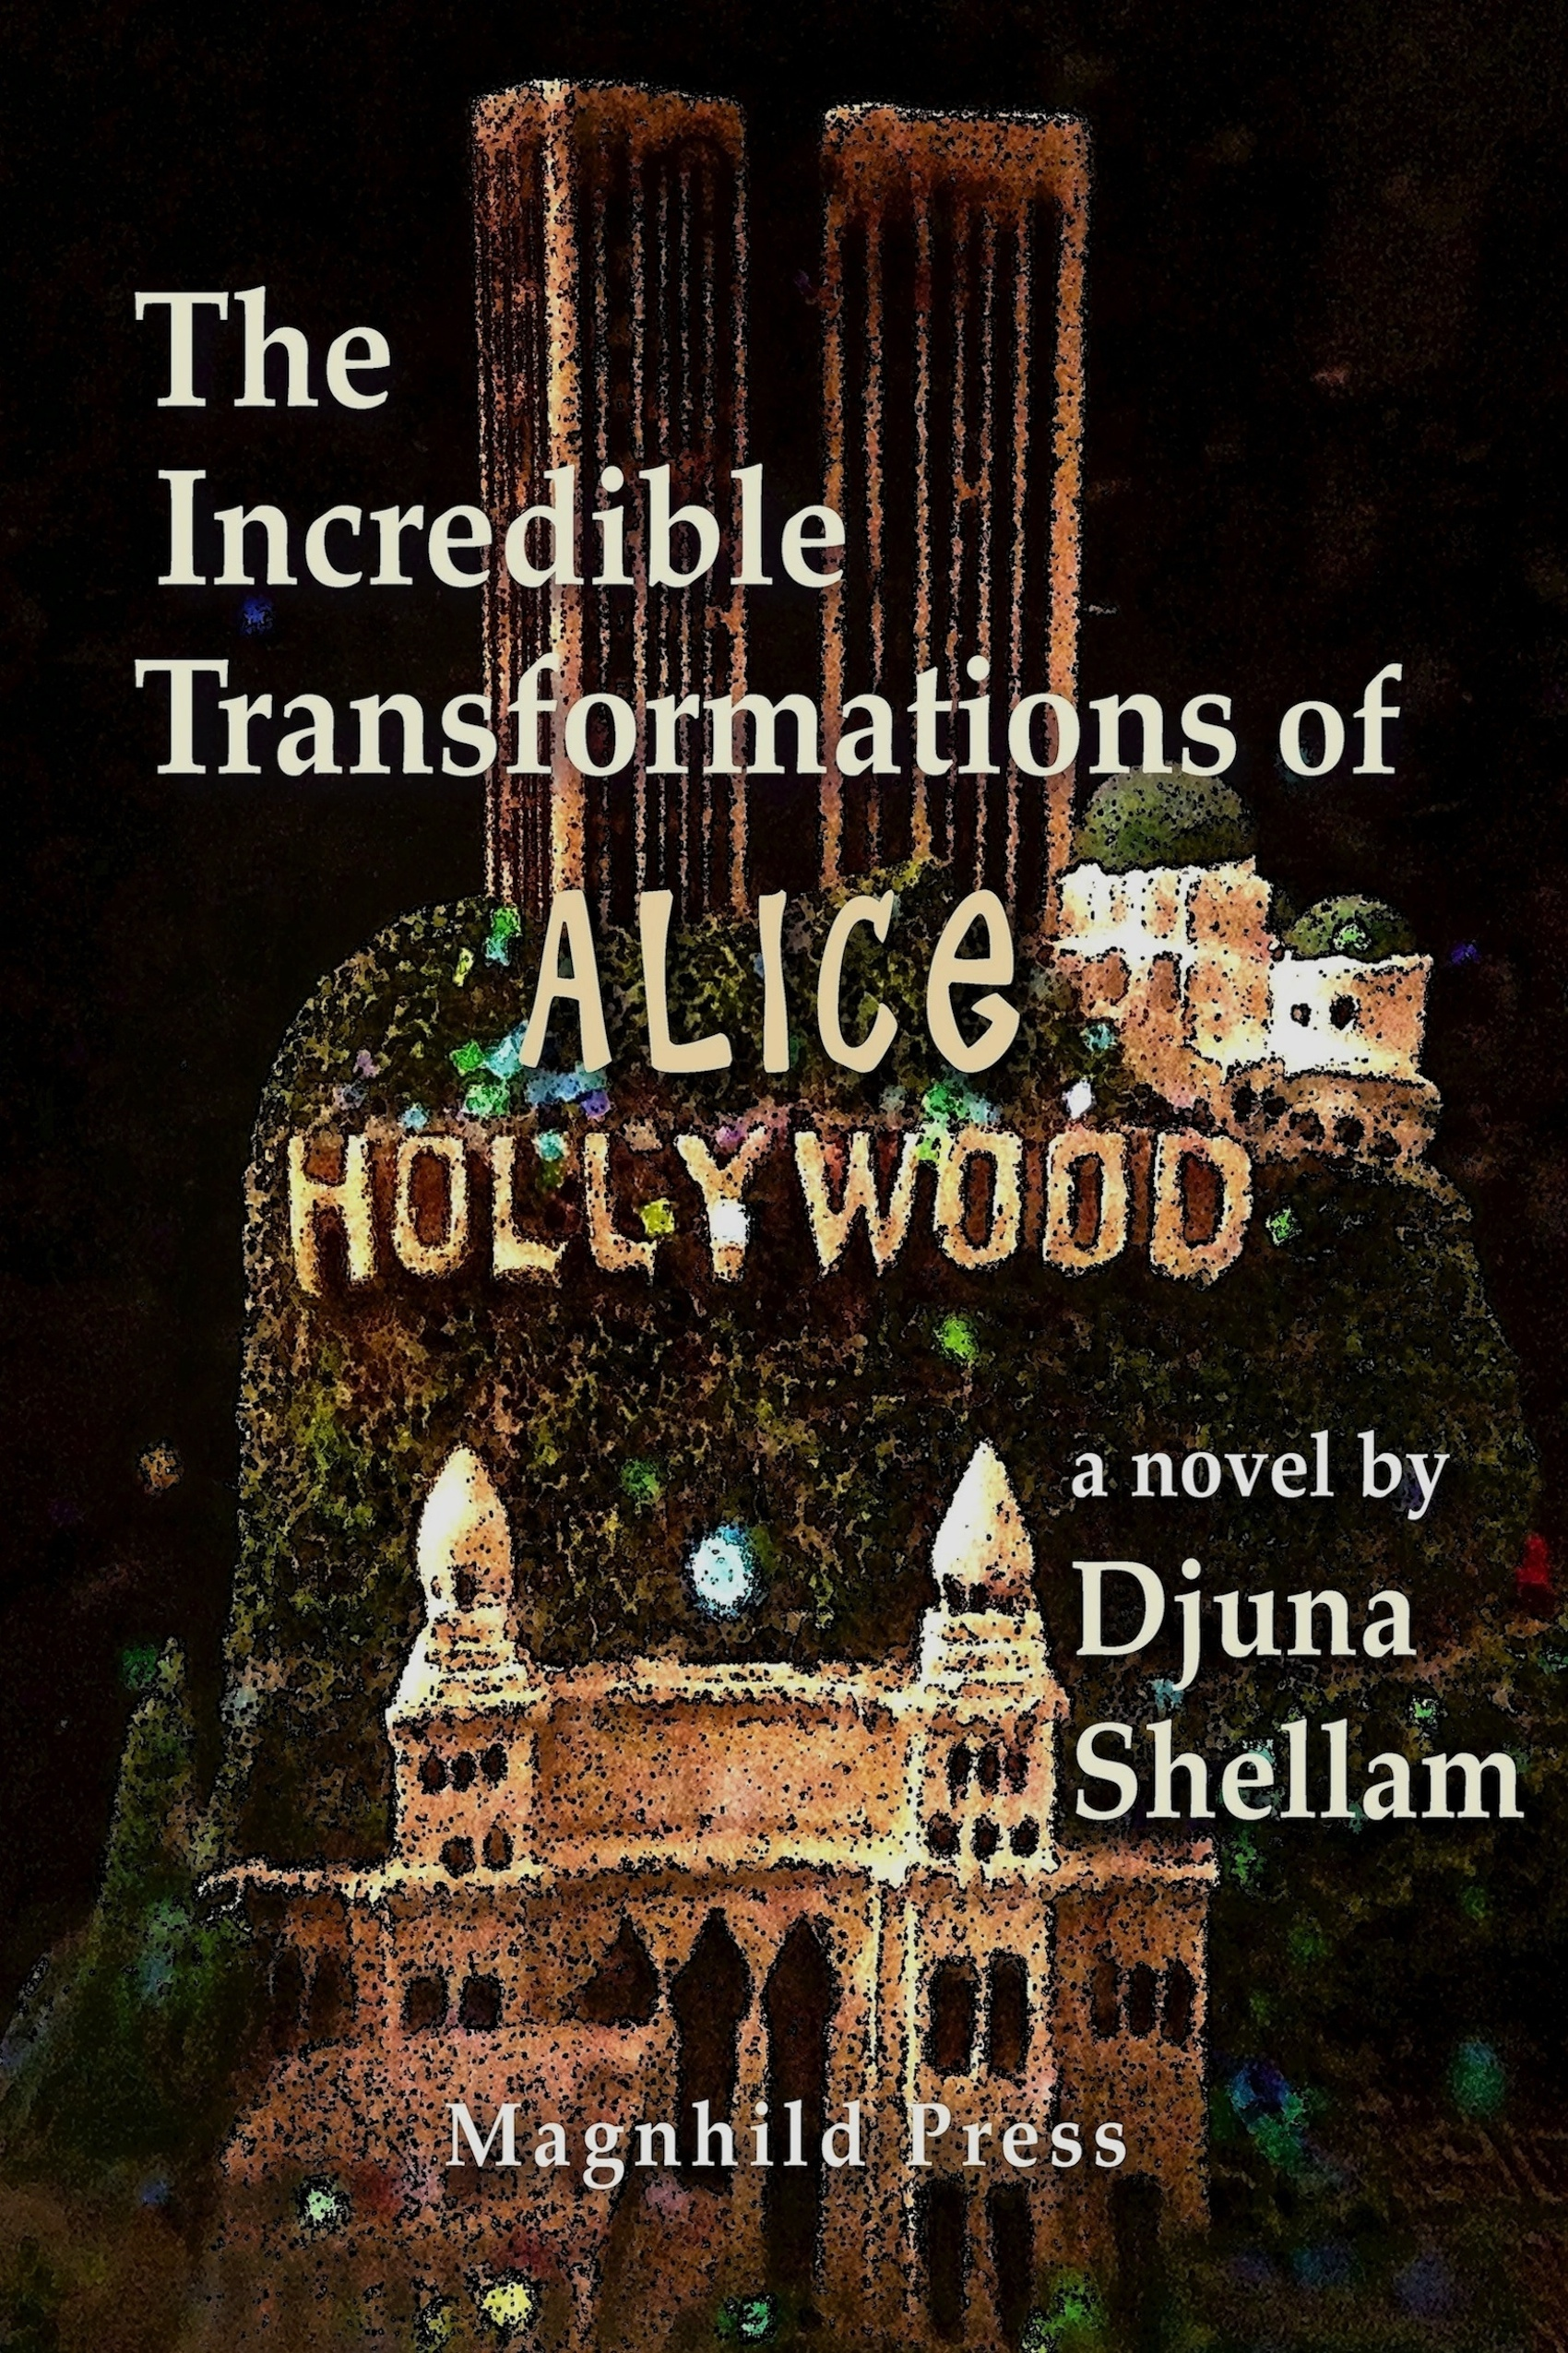 Alice Hollywood Excerpt